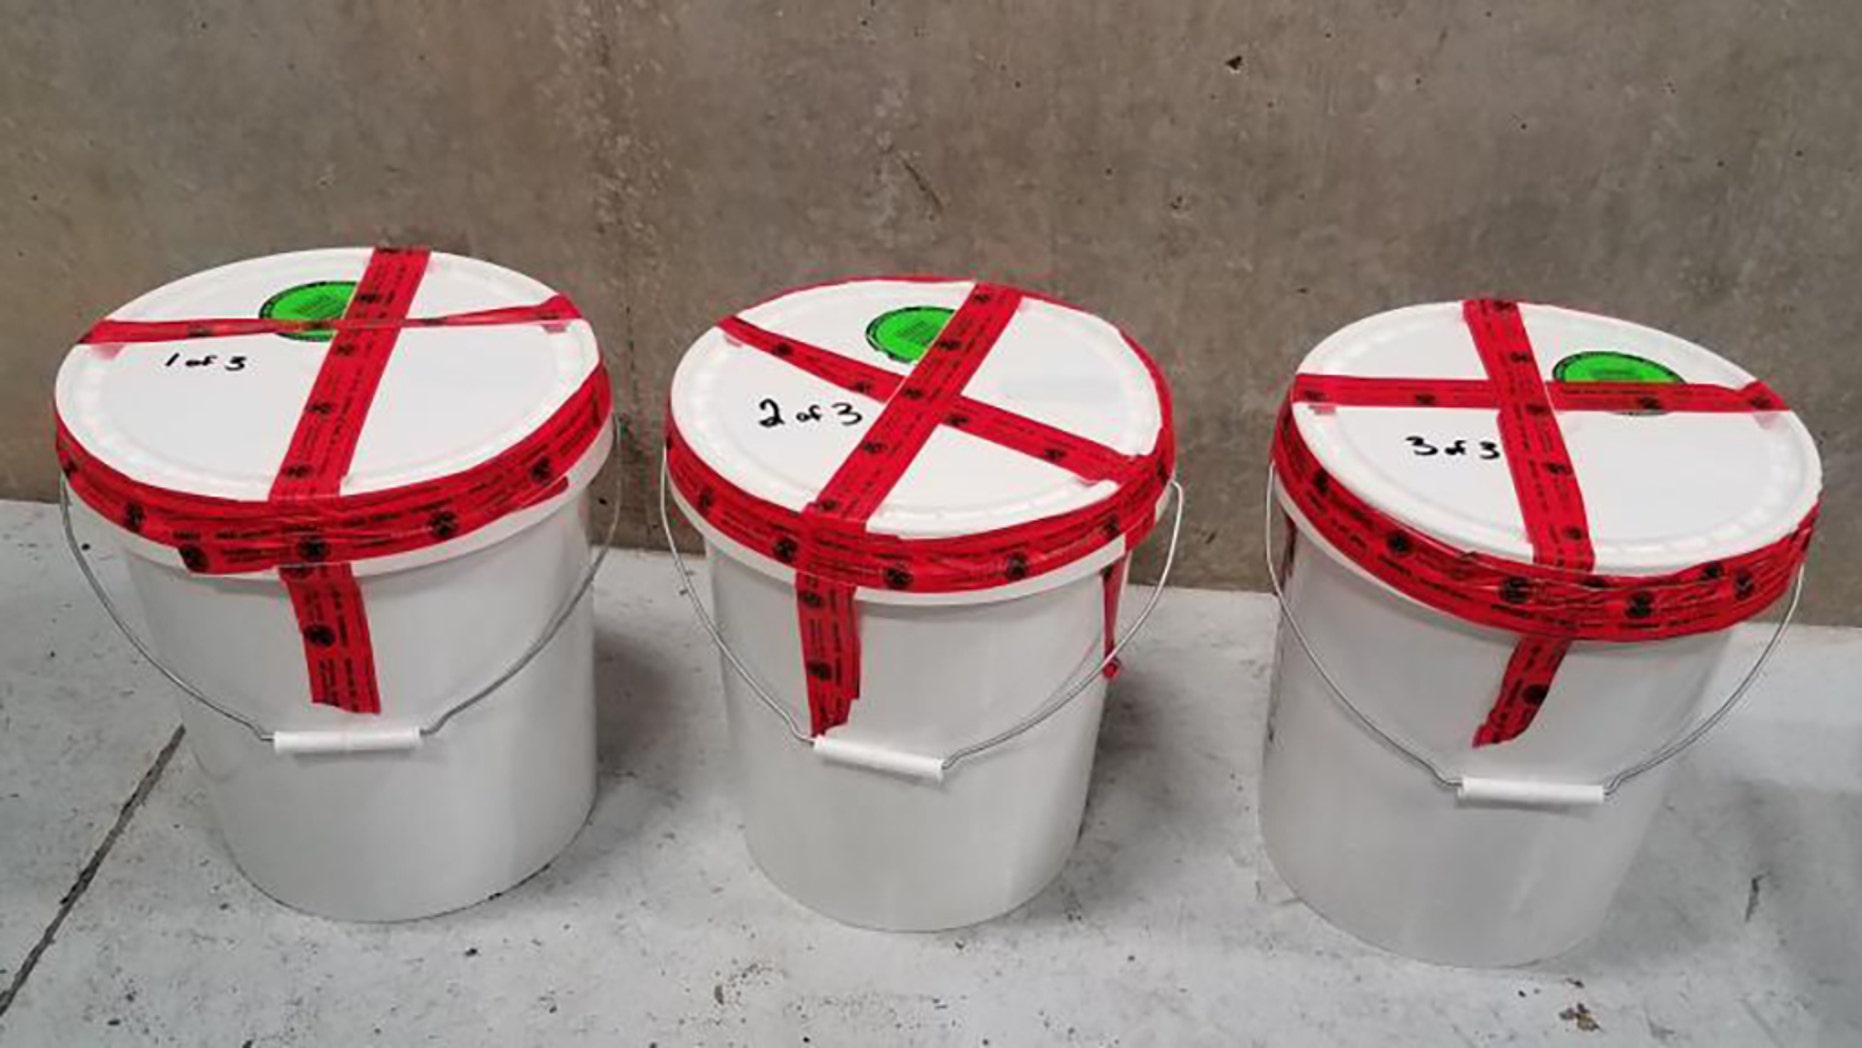 Buckets containing 94 pounds of methamphetamine seized by CBP officers at Laredo Port of Entry.